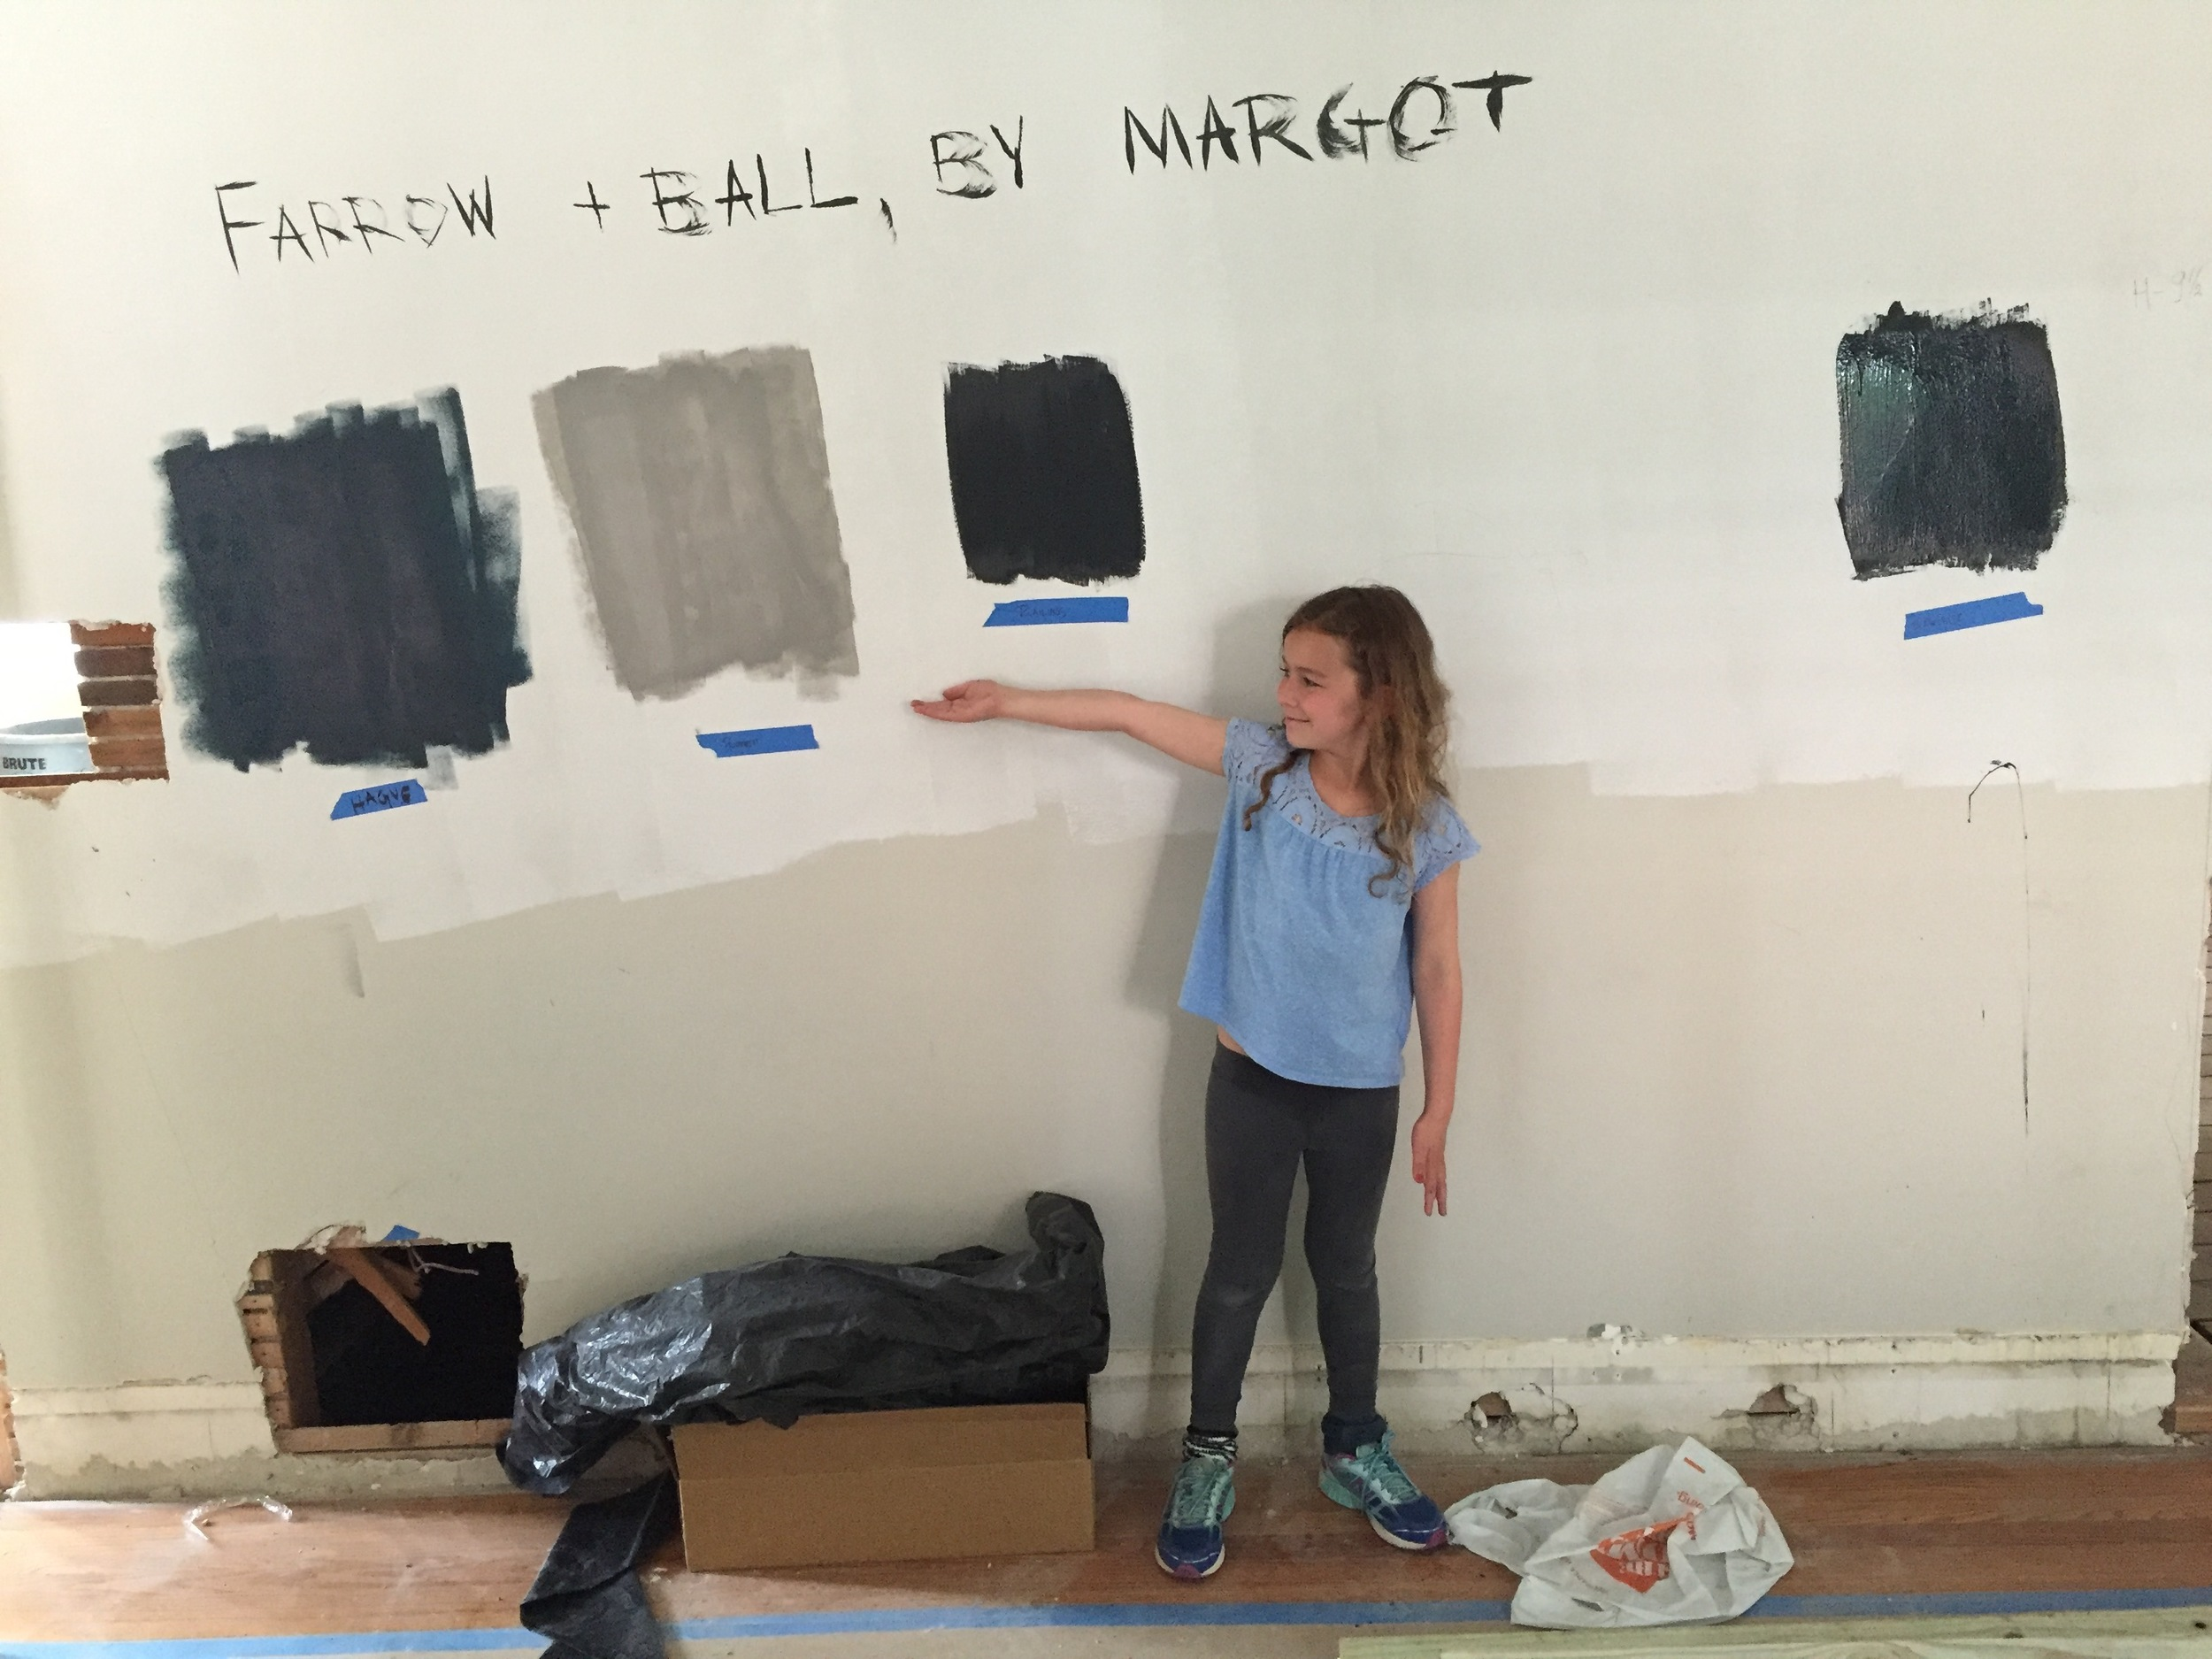 Our resident artist at work. It's not too early to start thinking about the interior paint schedule.